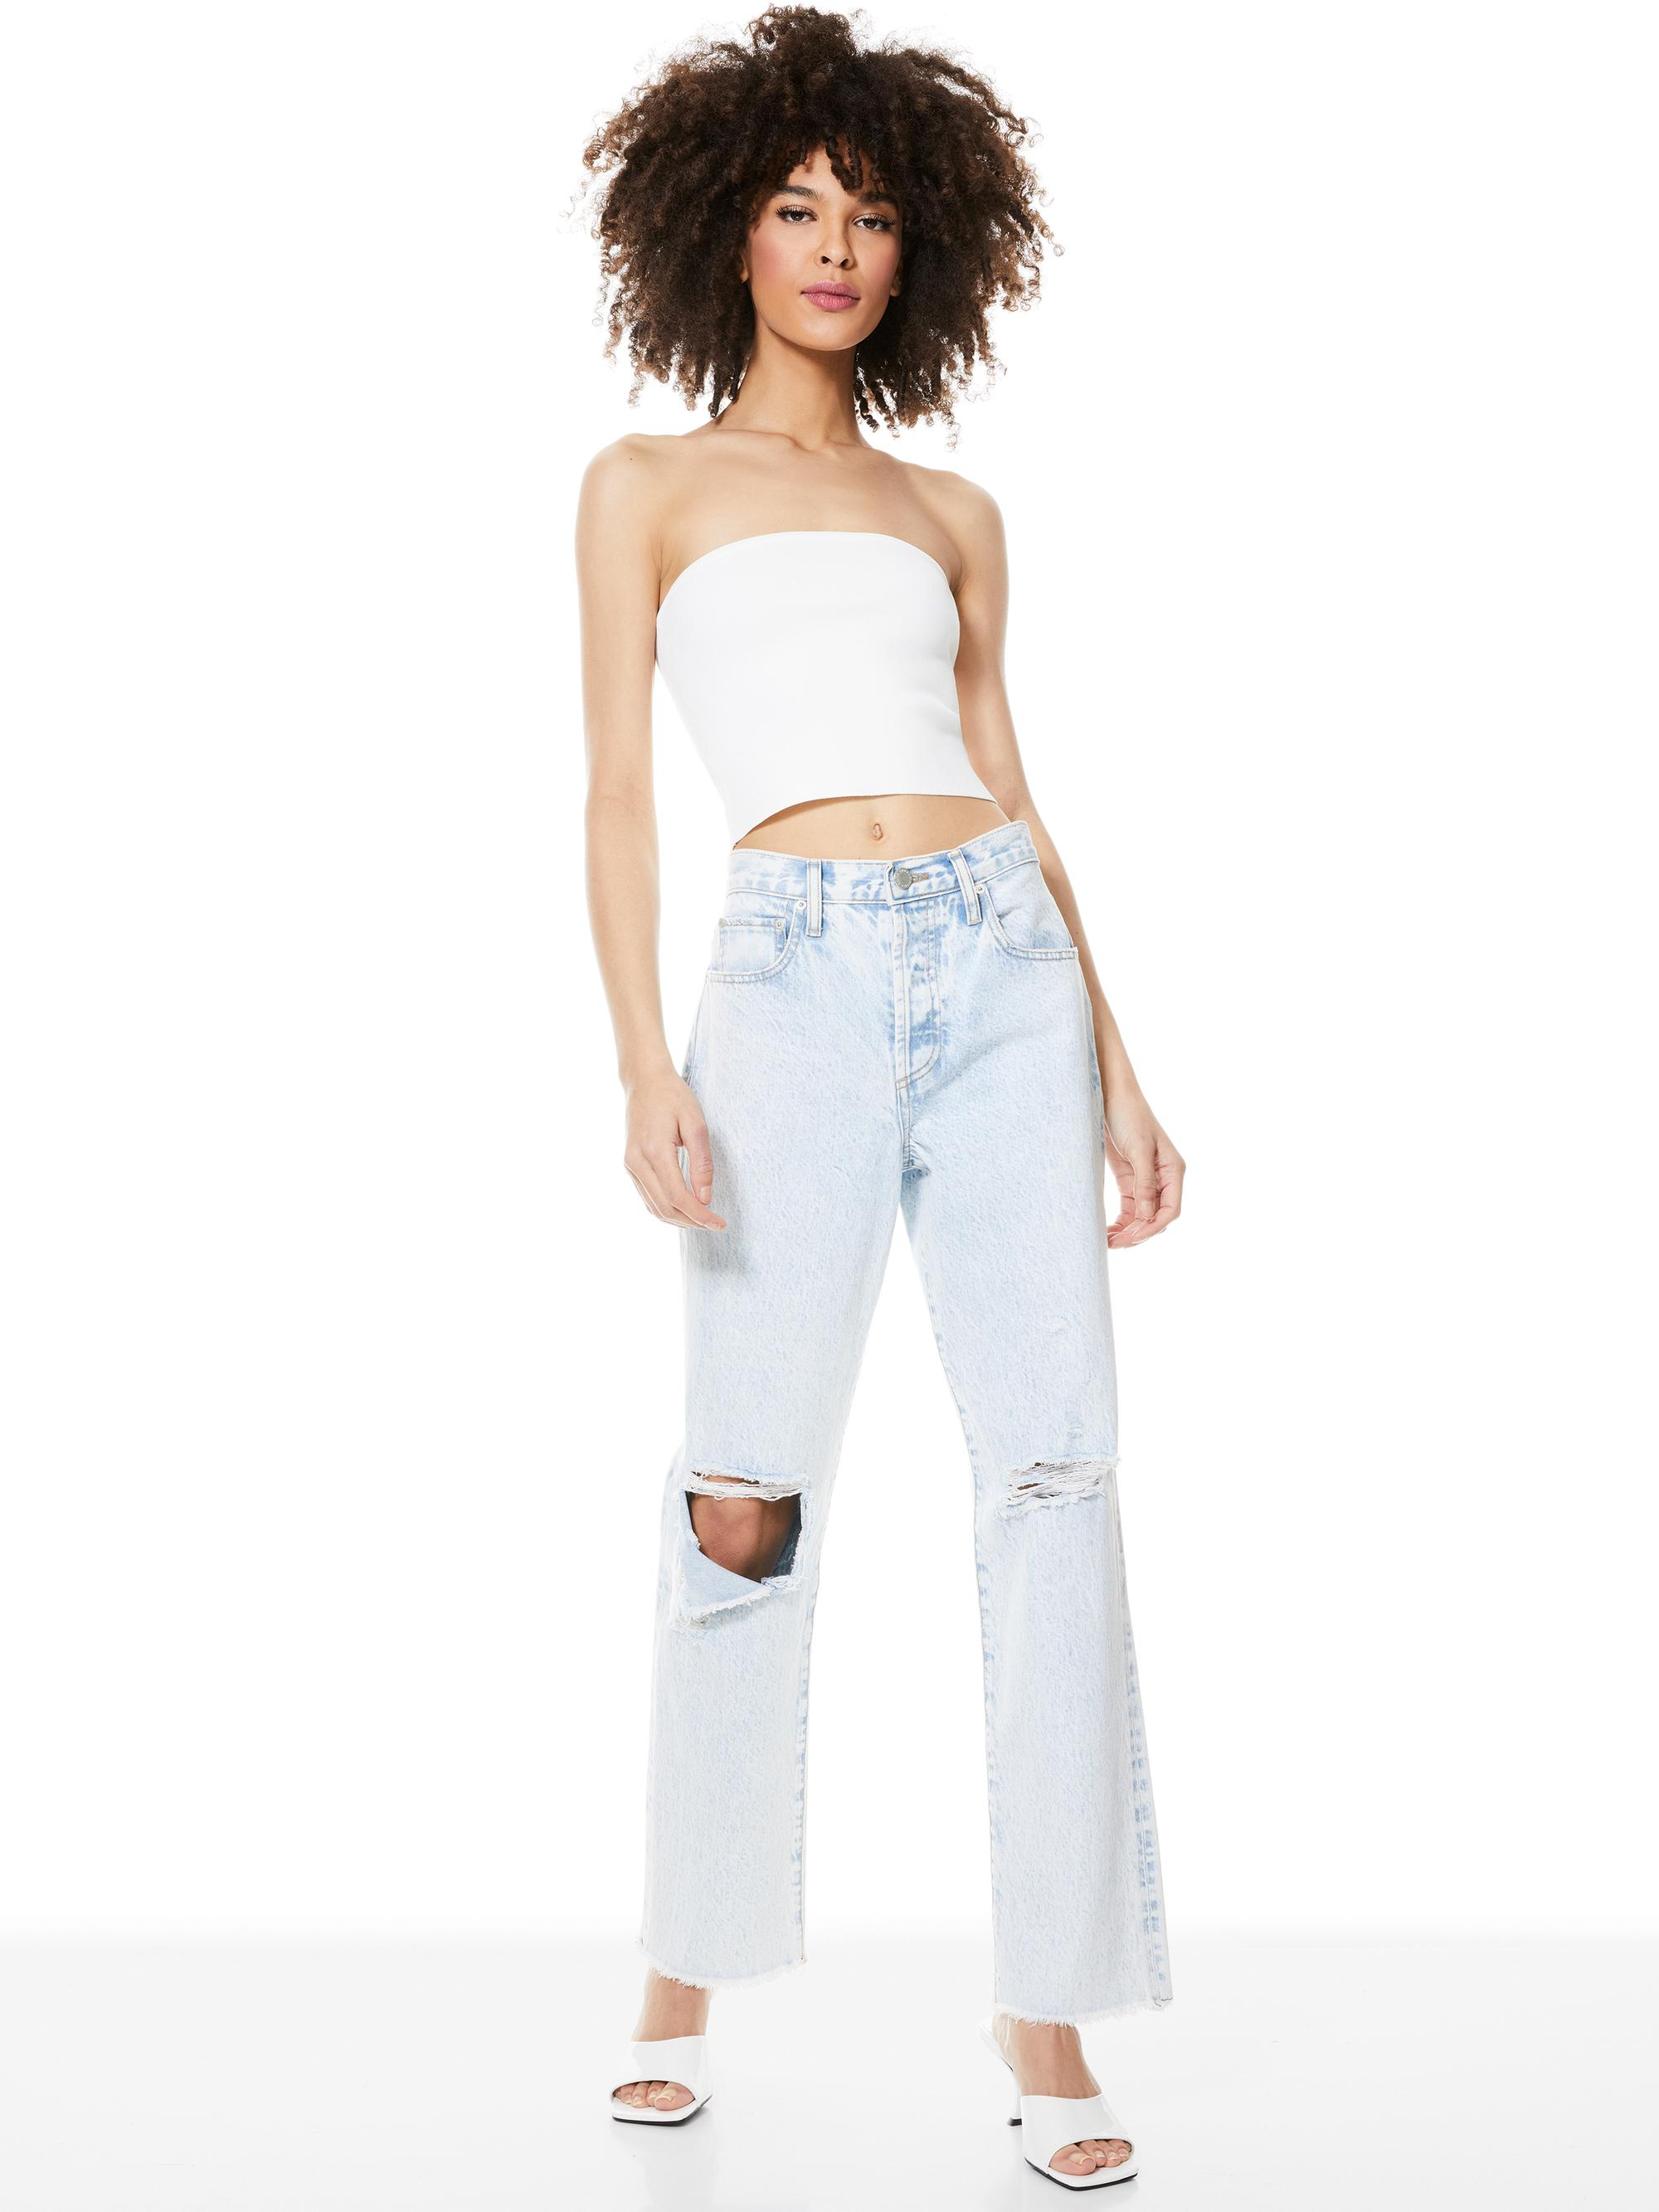 ALISON CROPPED TUBE TOP 4